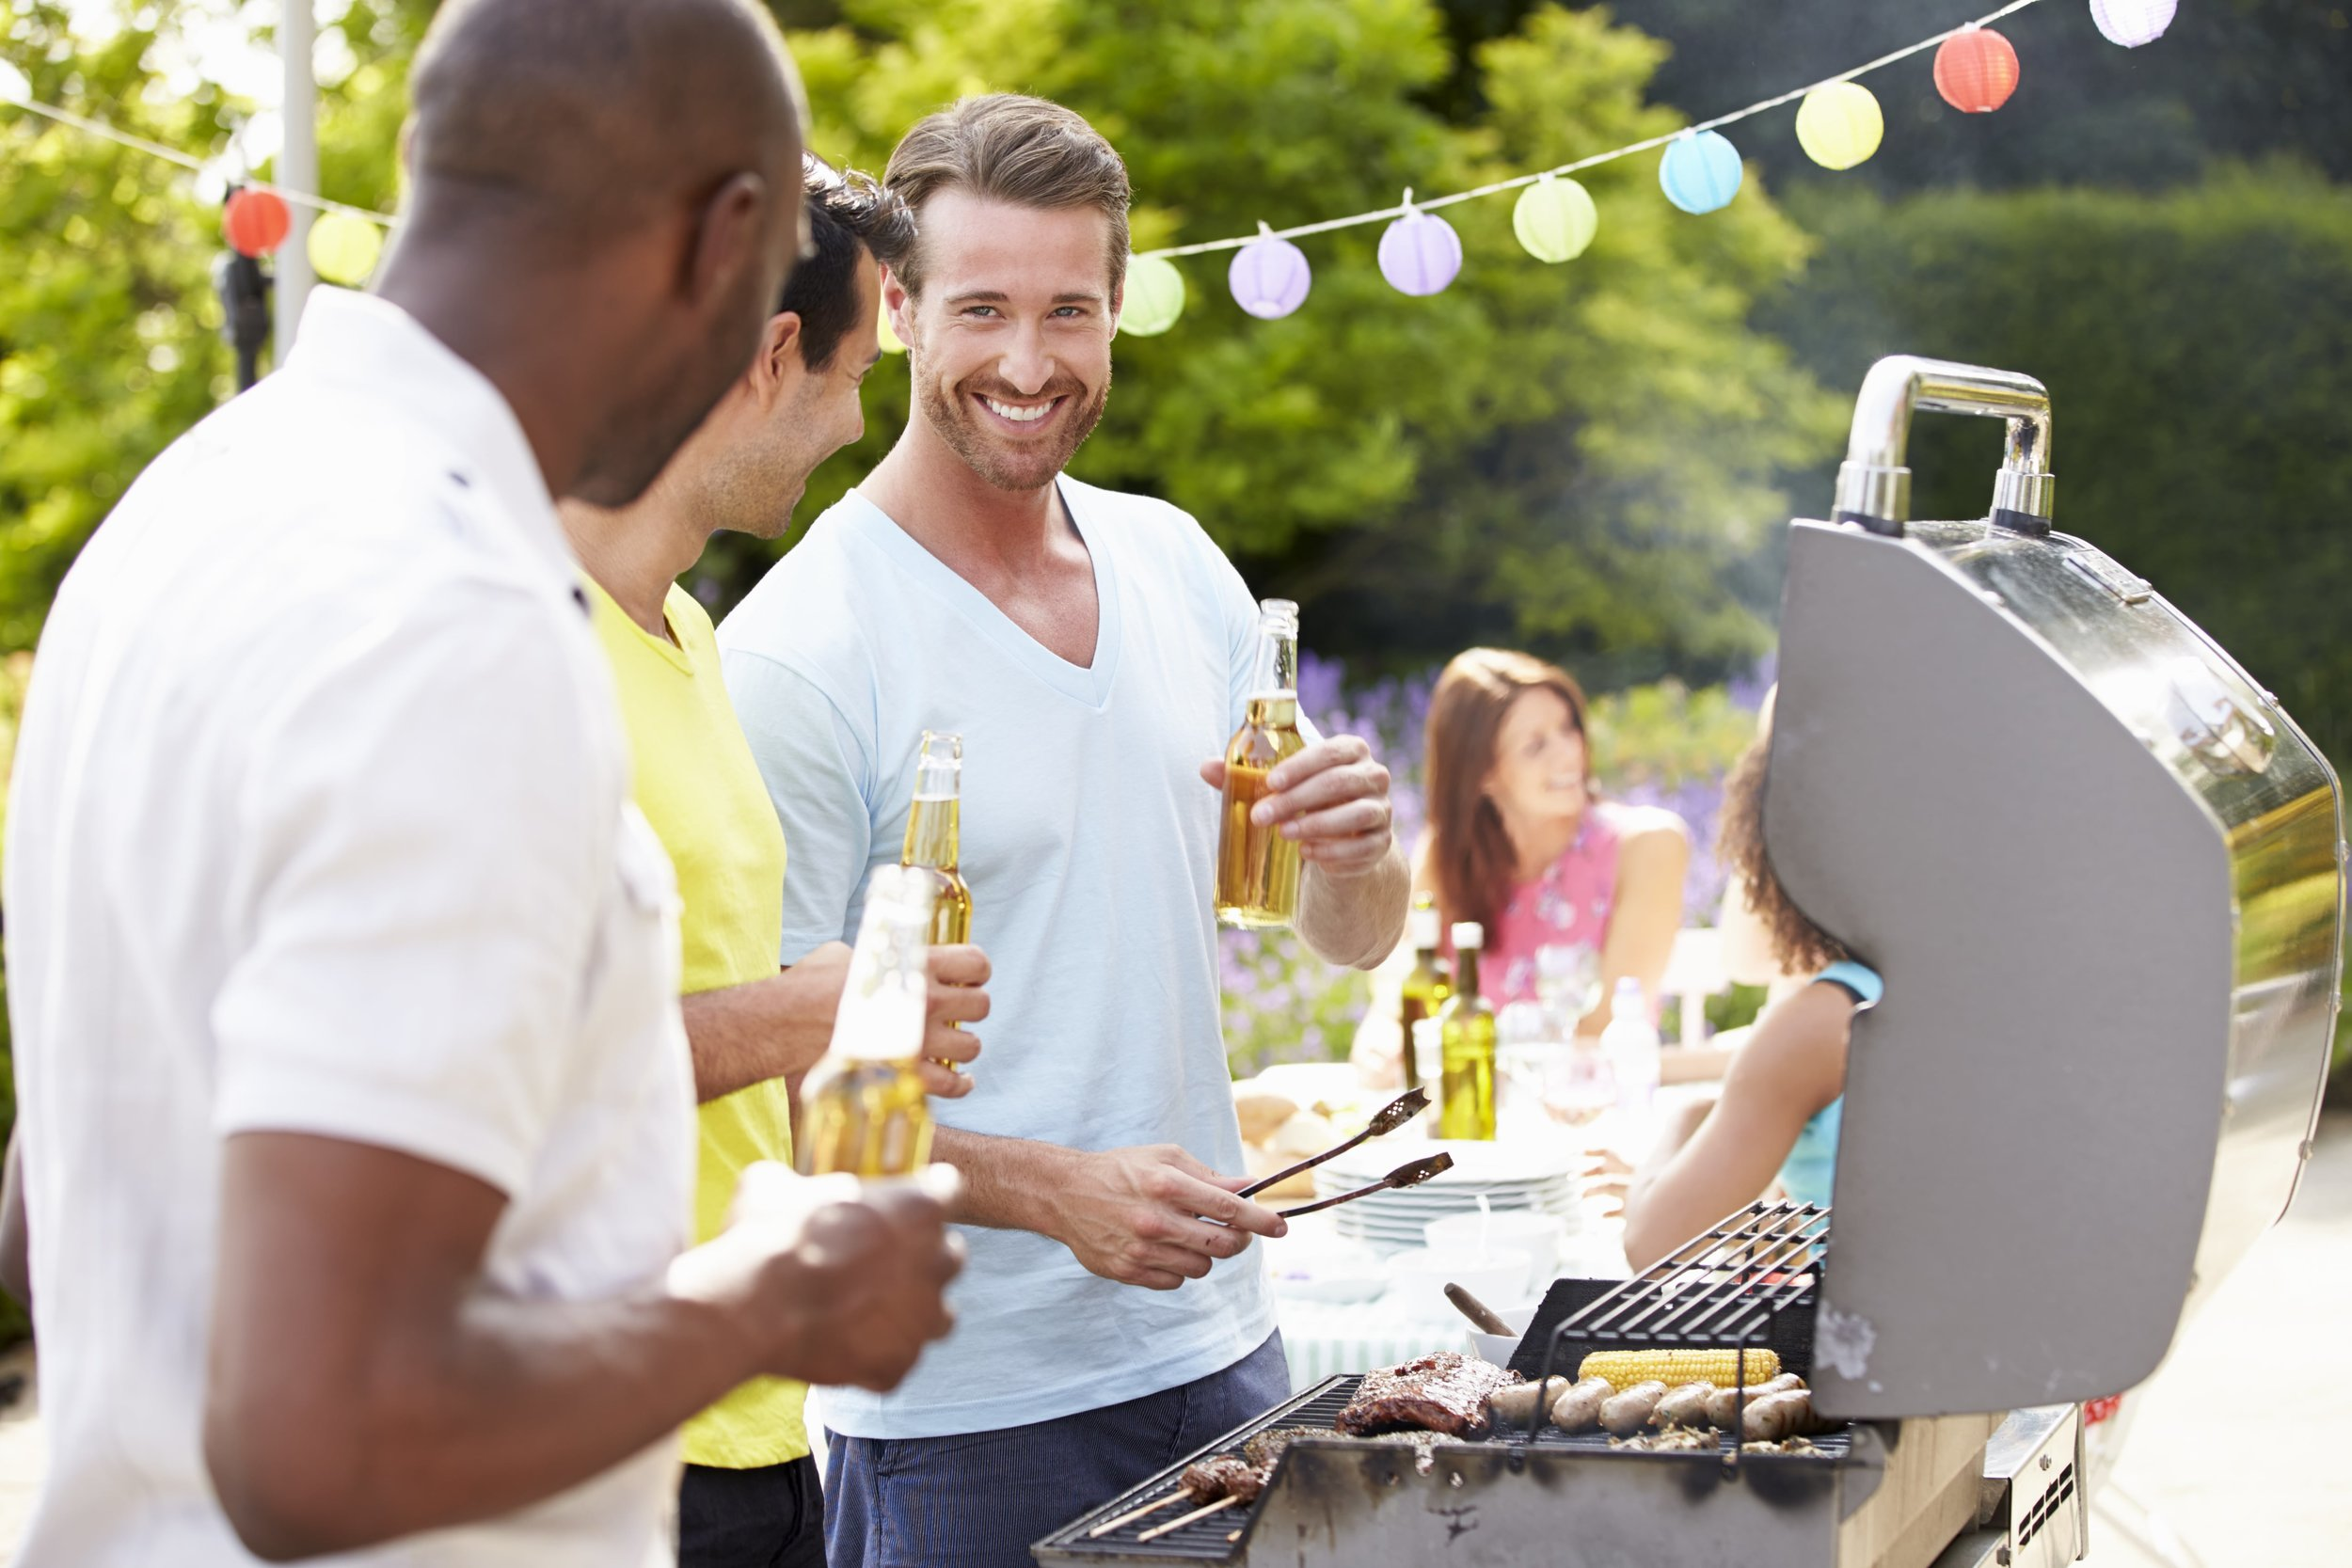 OUTDOOR - Bring luxury to your time outdoors with propane. Heated pools, fireplaces, lighting, and gas grills provide year-round entertainment for your space.